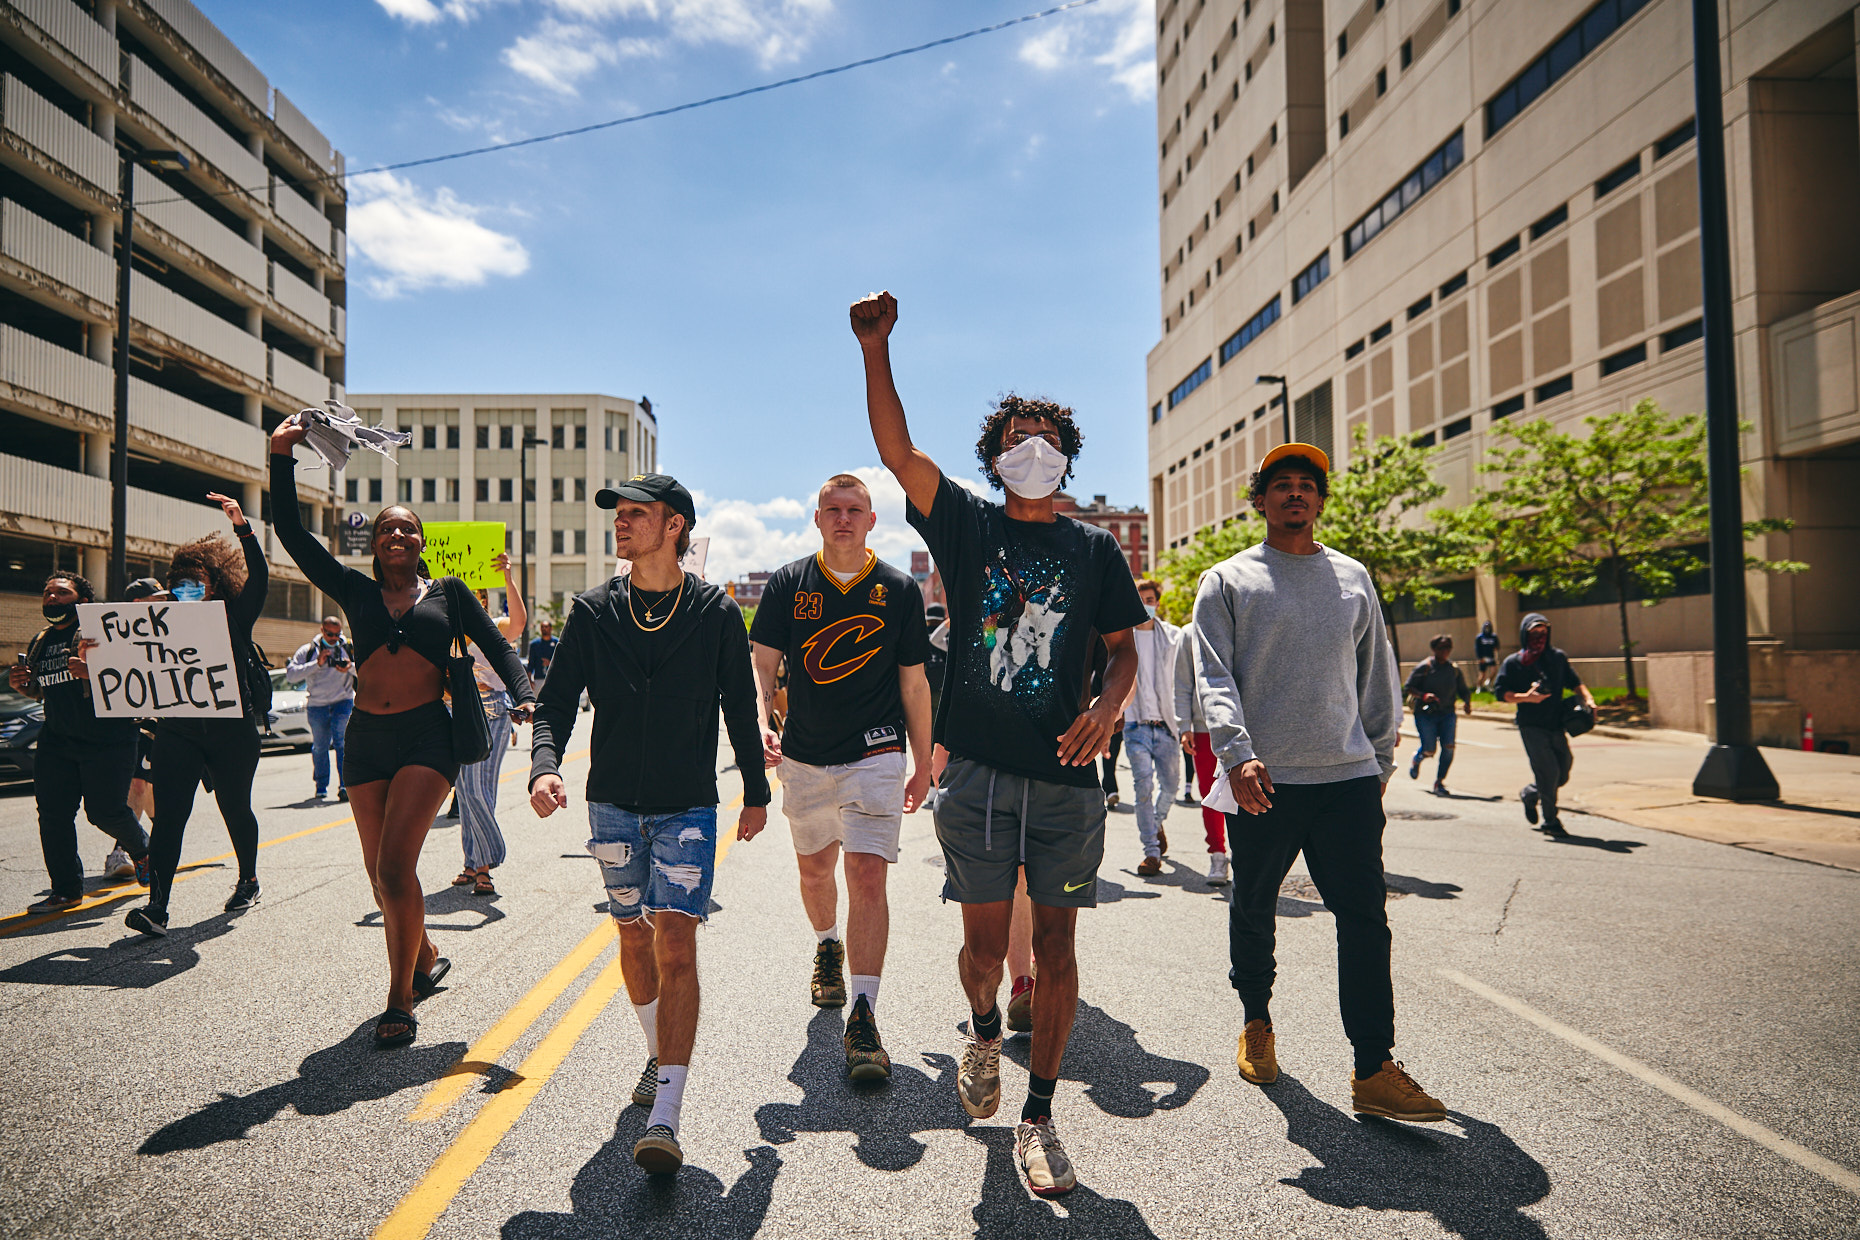 Cleveland_Floyd_Protest_13